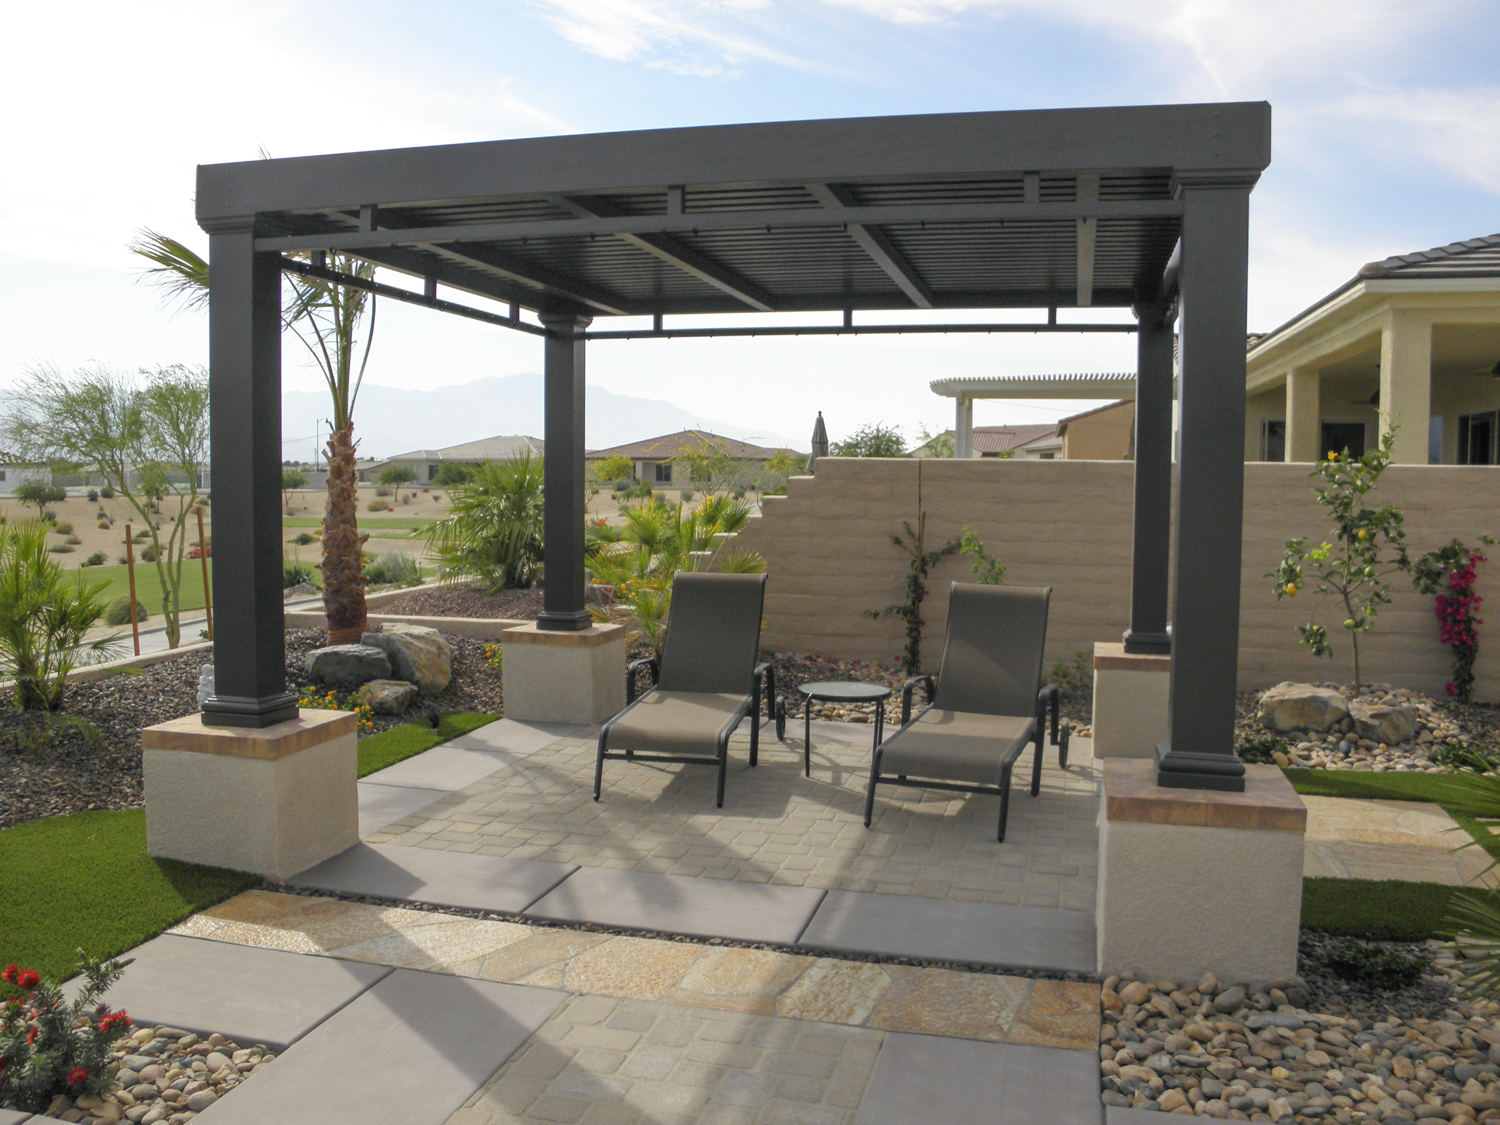 Patio Cover Ideas | Shade Structures | Patio Covers ... on Backyard Patio Cover Ideas  id=59145